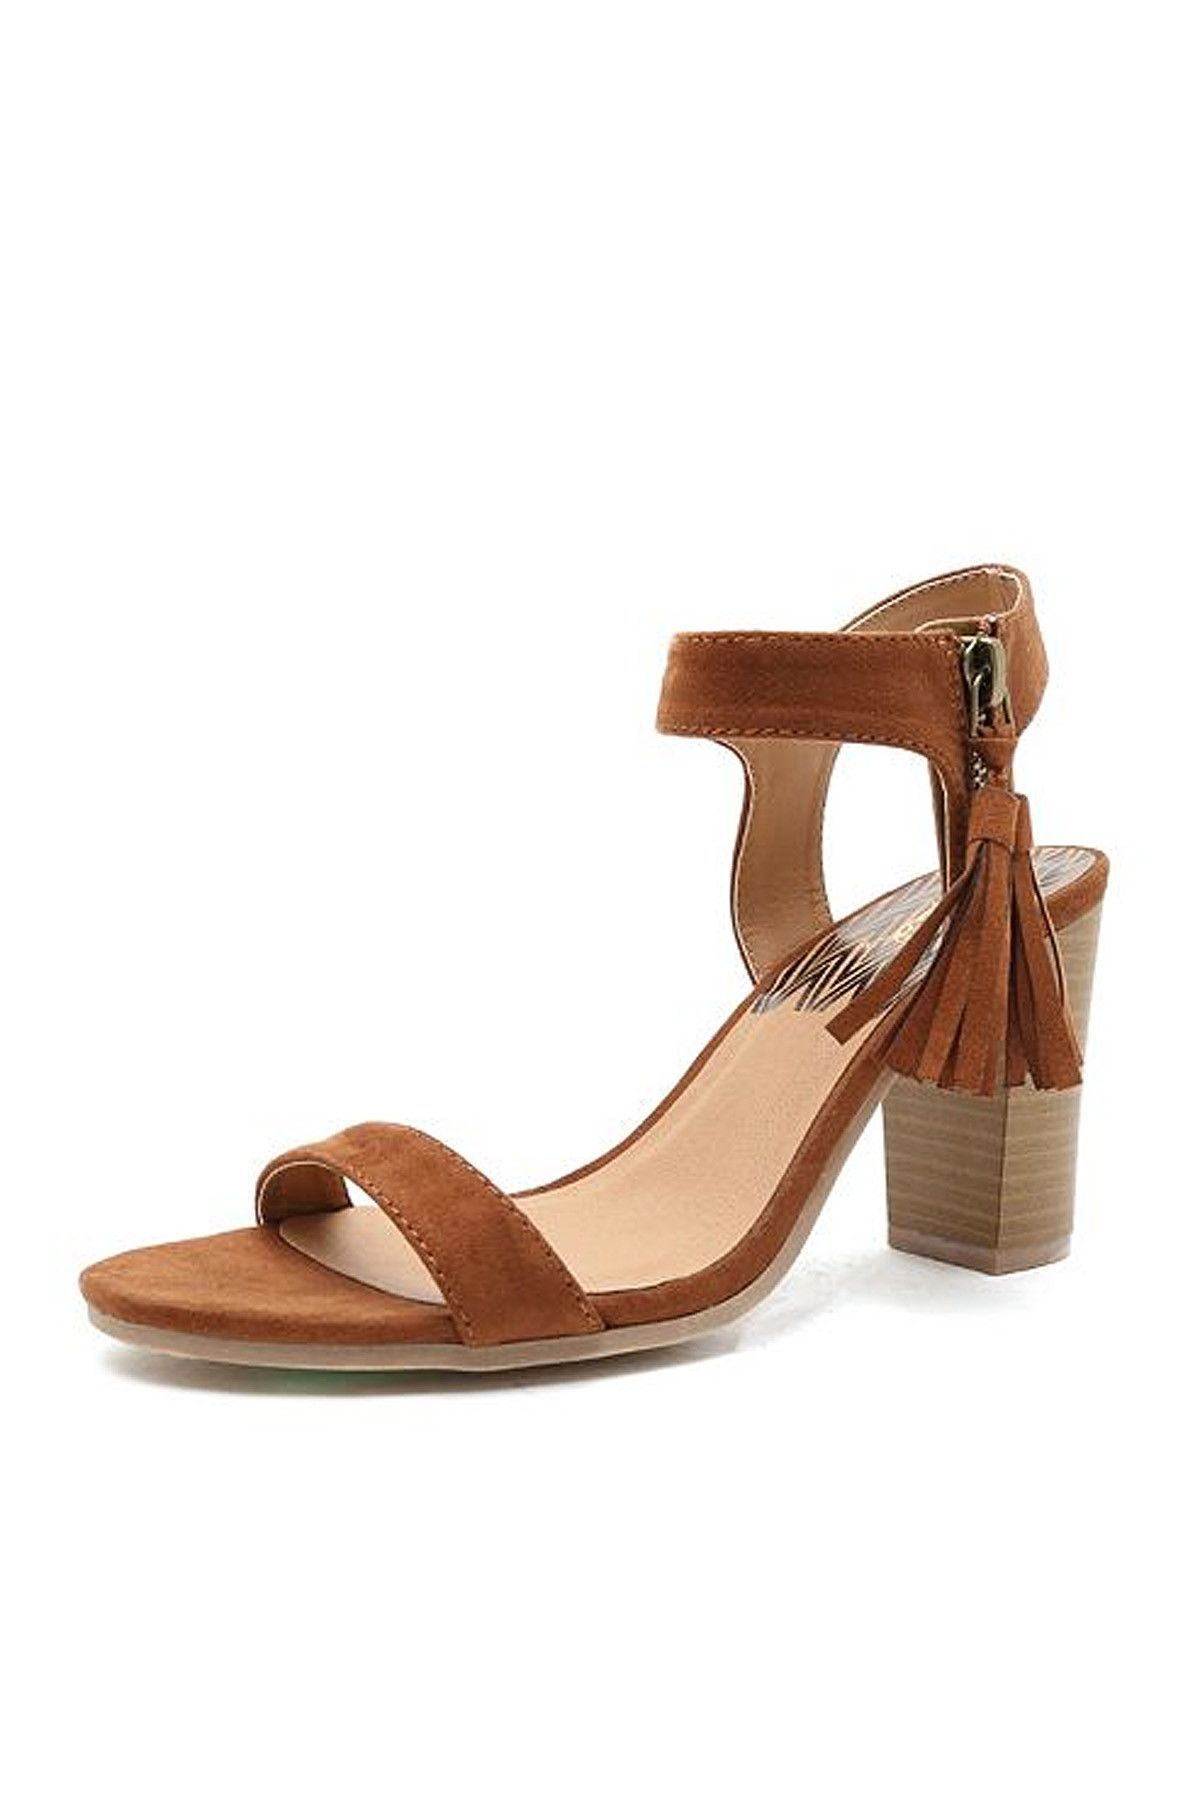 ed612994799 Add some playful style to your ensemble when you slip on these ...